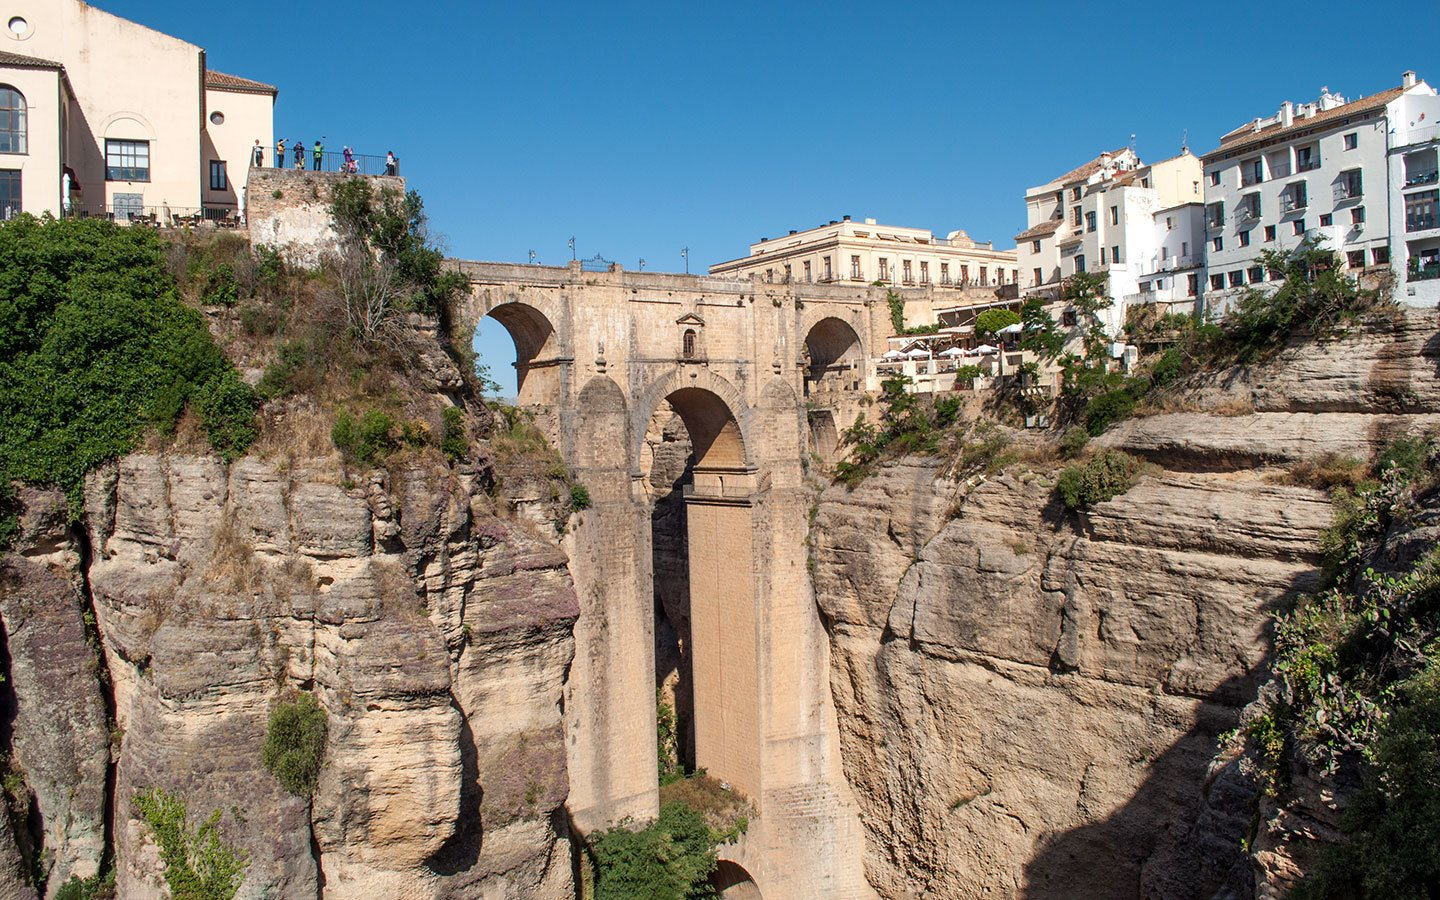 Bridges and baths: Things to do in Ronda, Spain